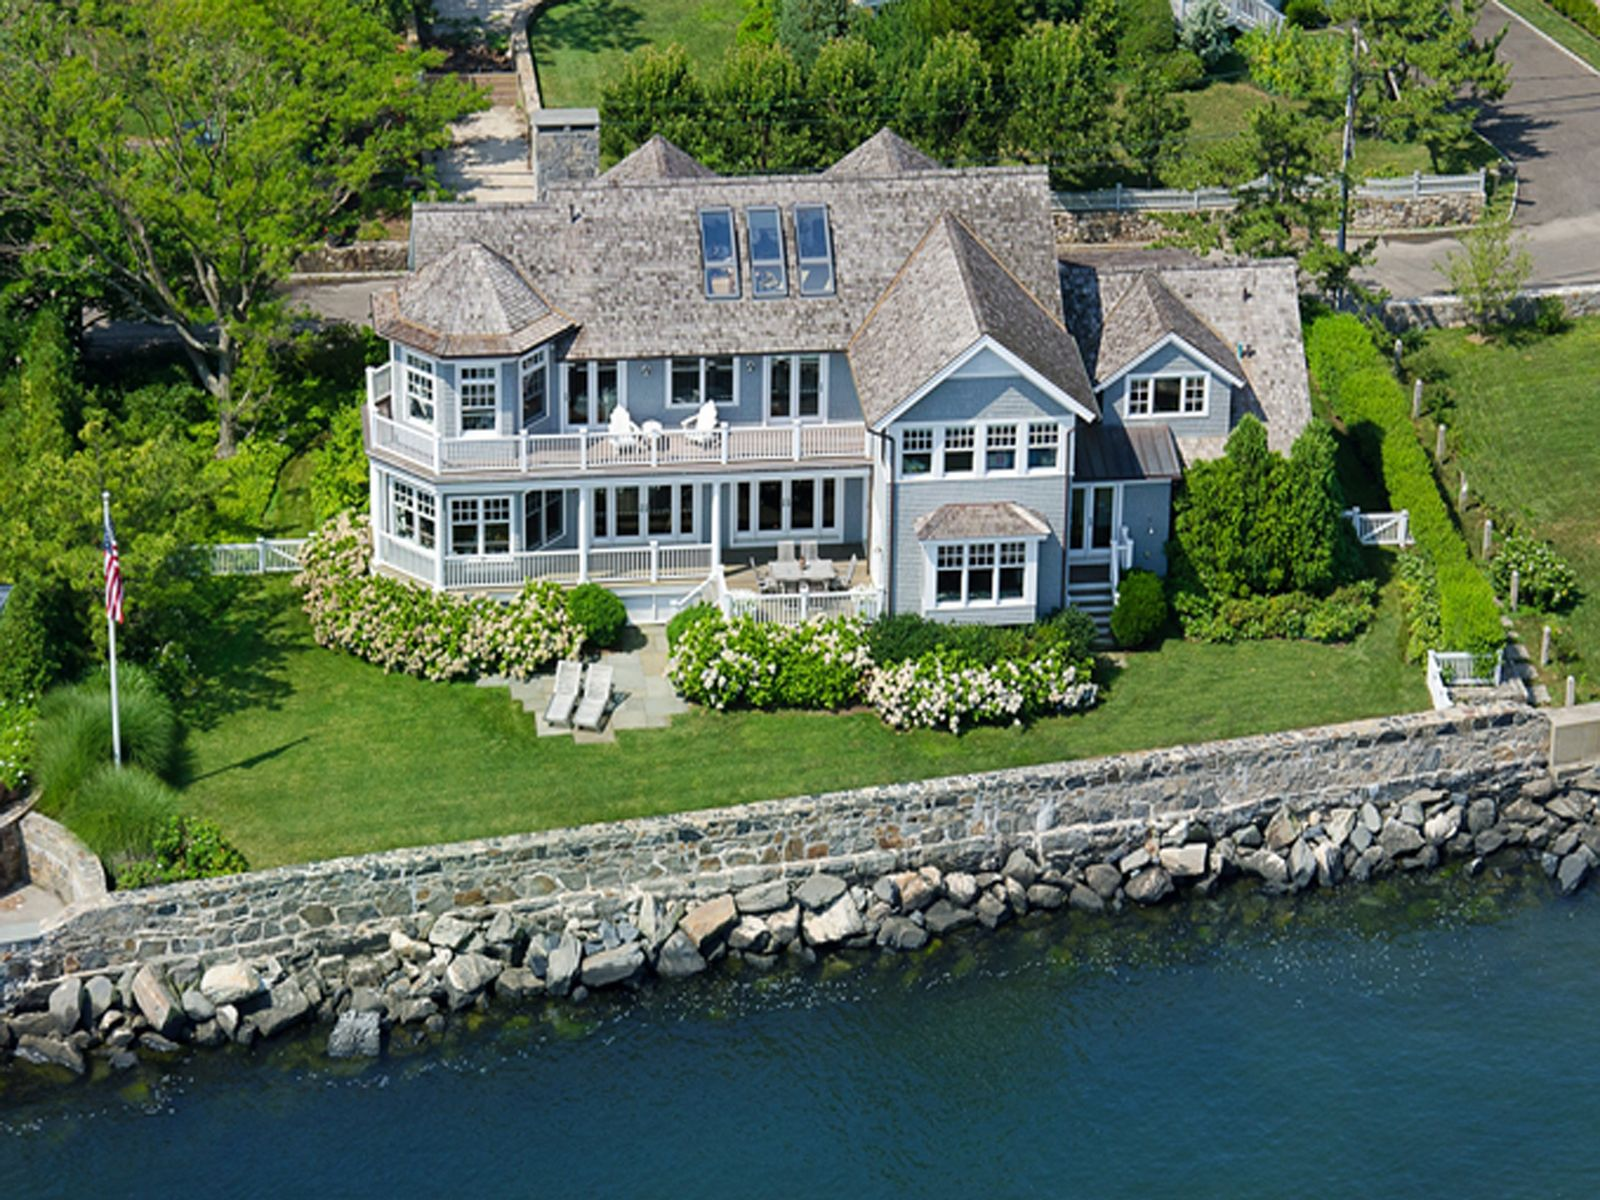 Spectacular Waterfront in Old Greenwich, Old Greenwich CT Single Family Home - Greenwich Real Estate